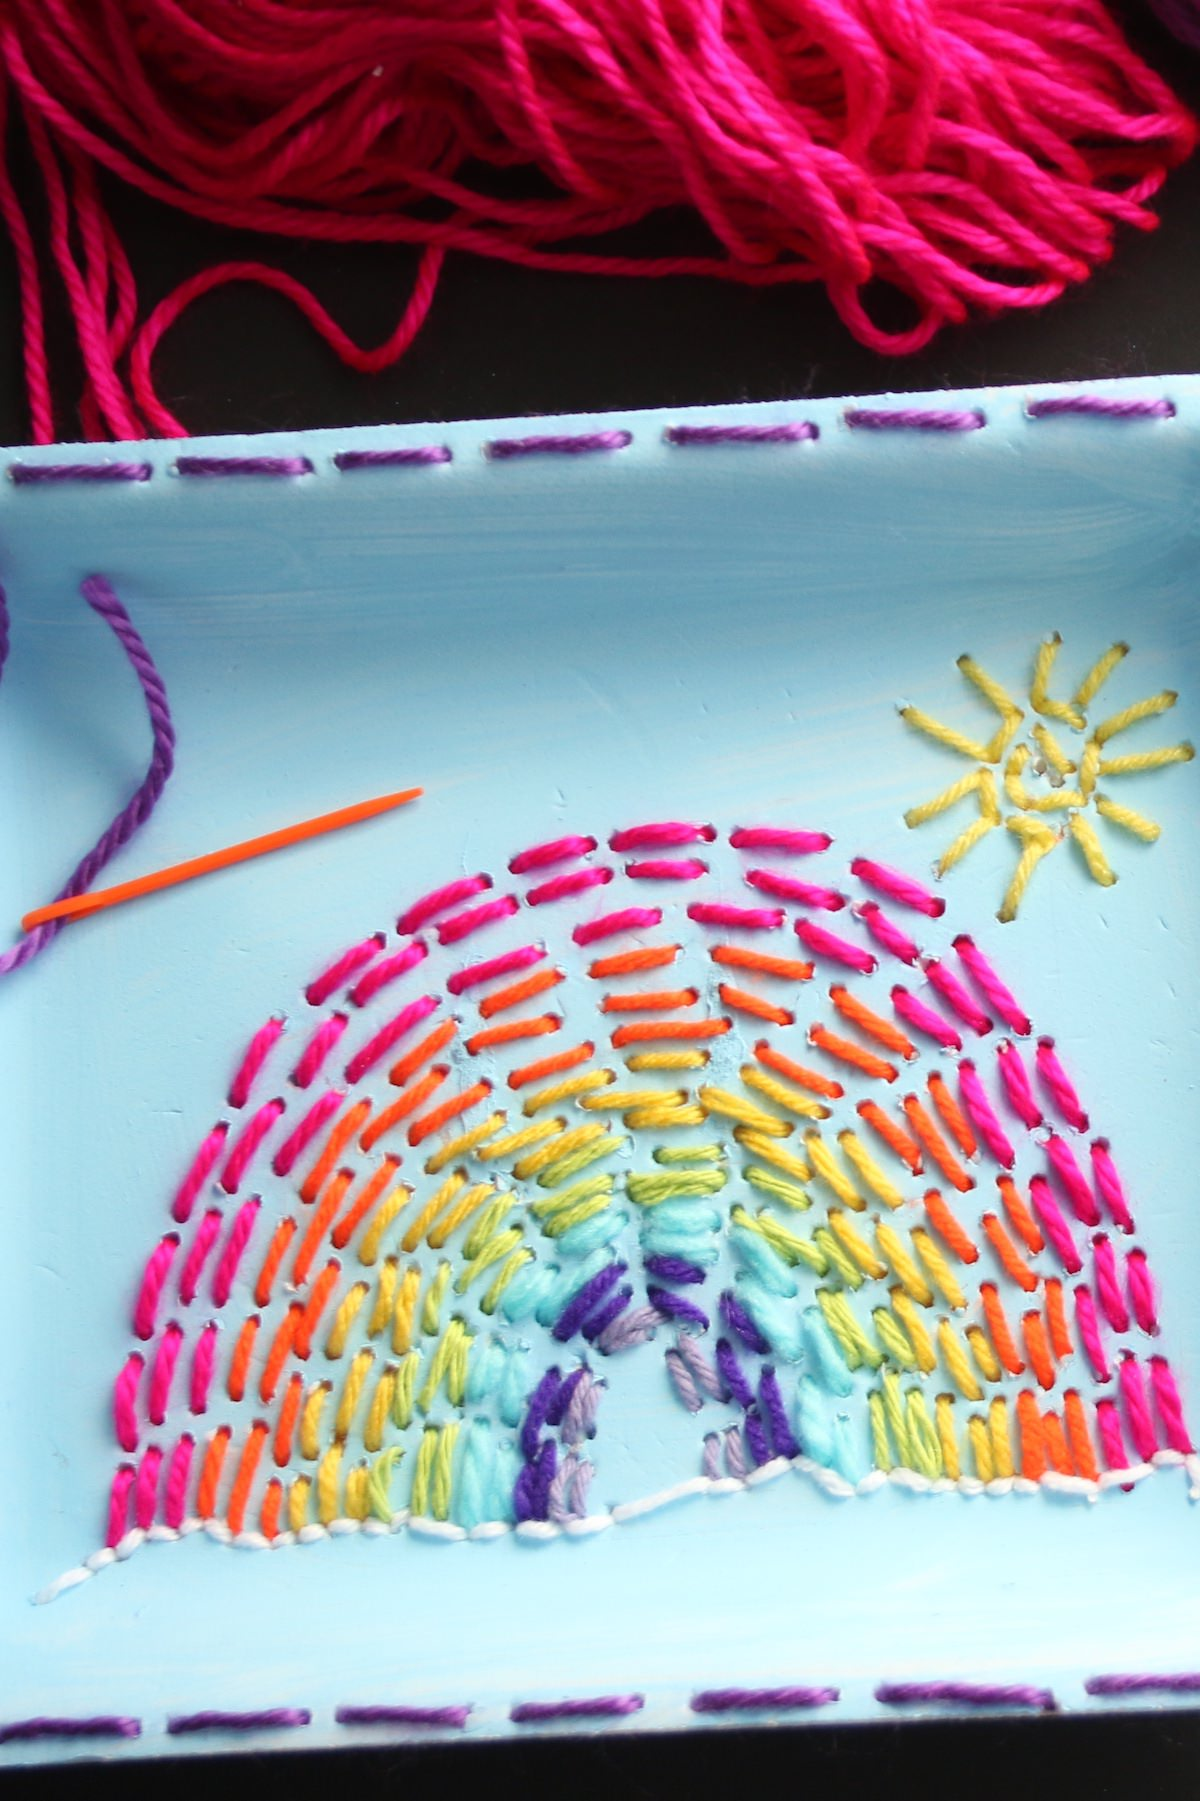 kid sewn rainbow on produce tray with small sun and orange sewing needle